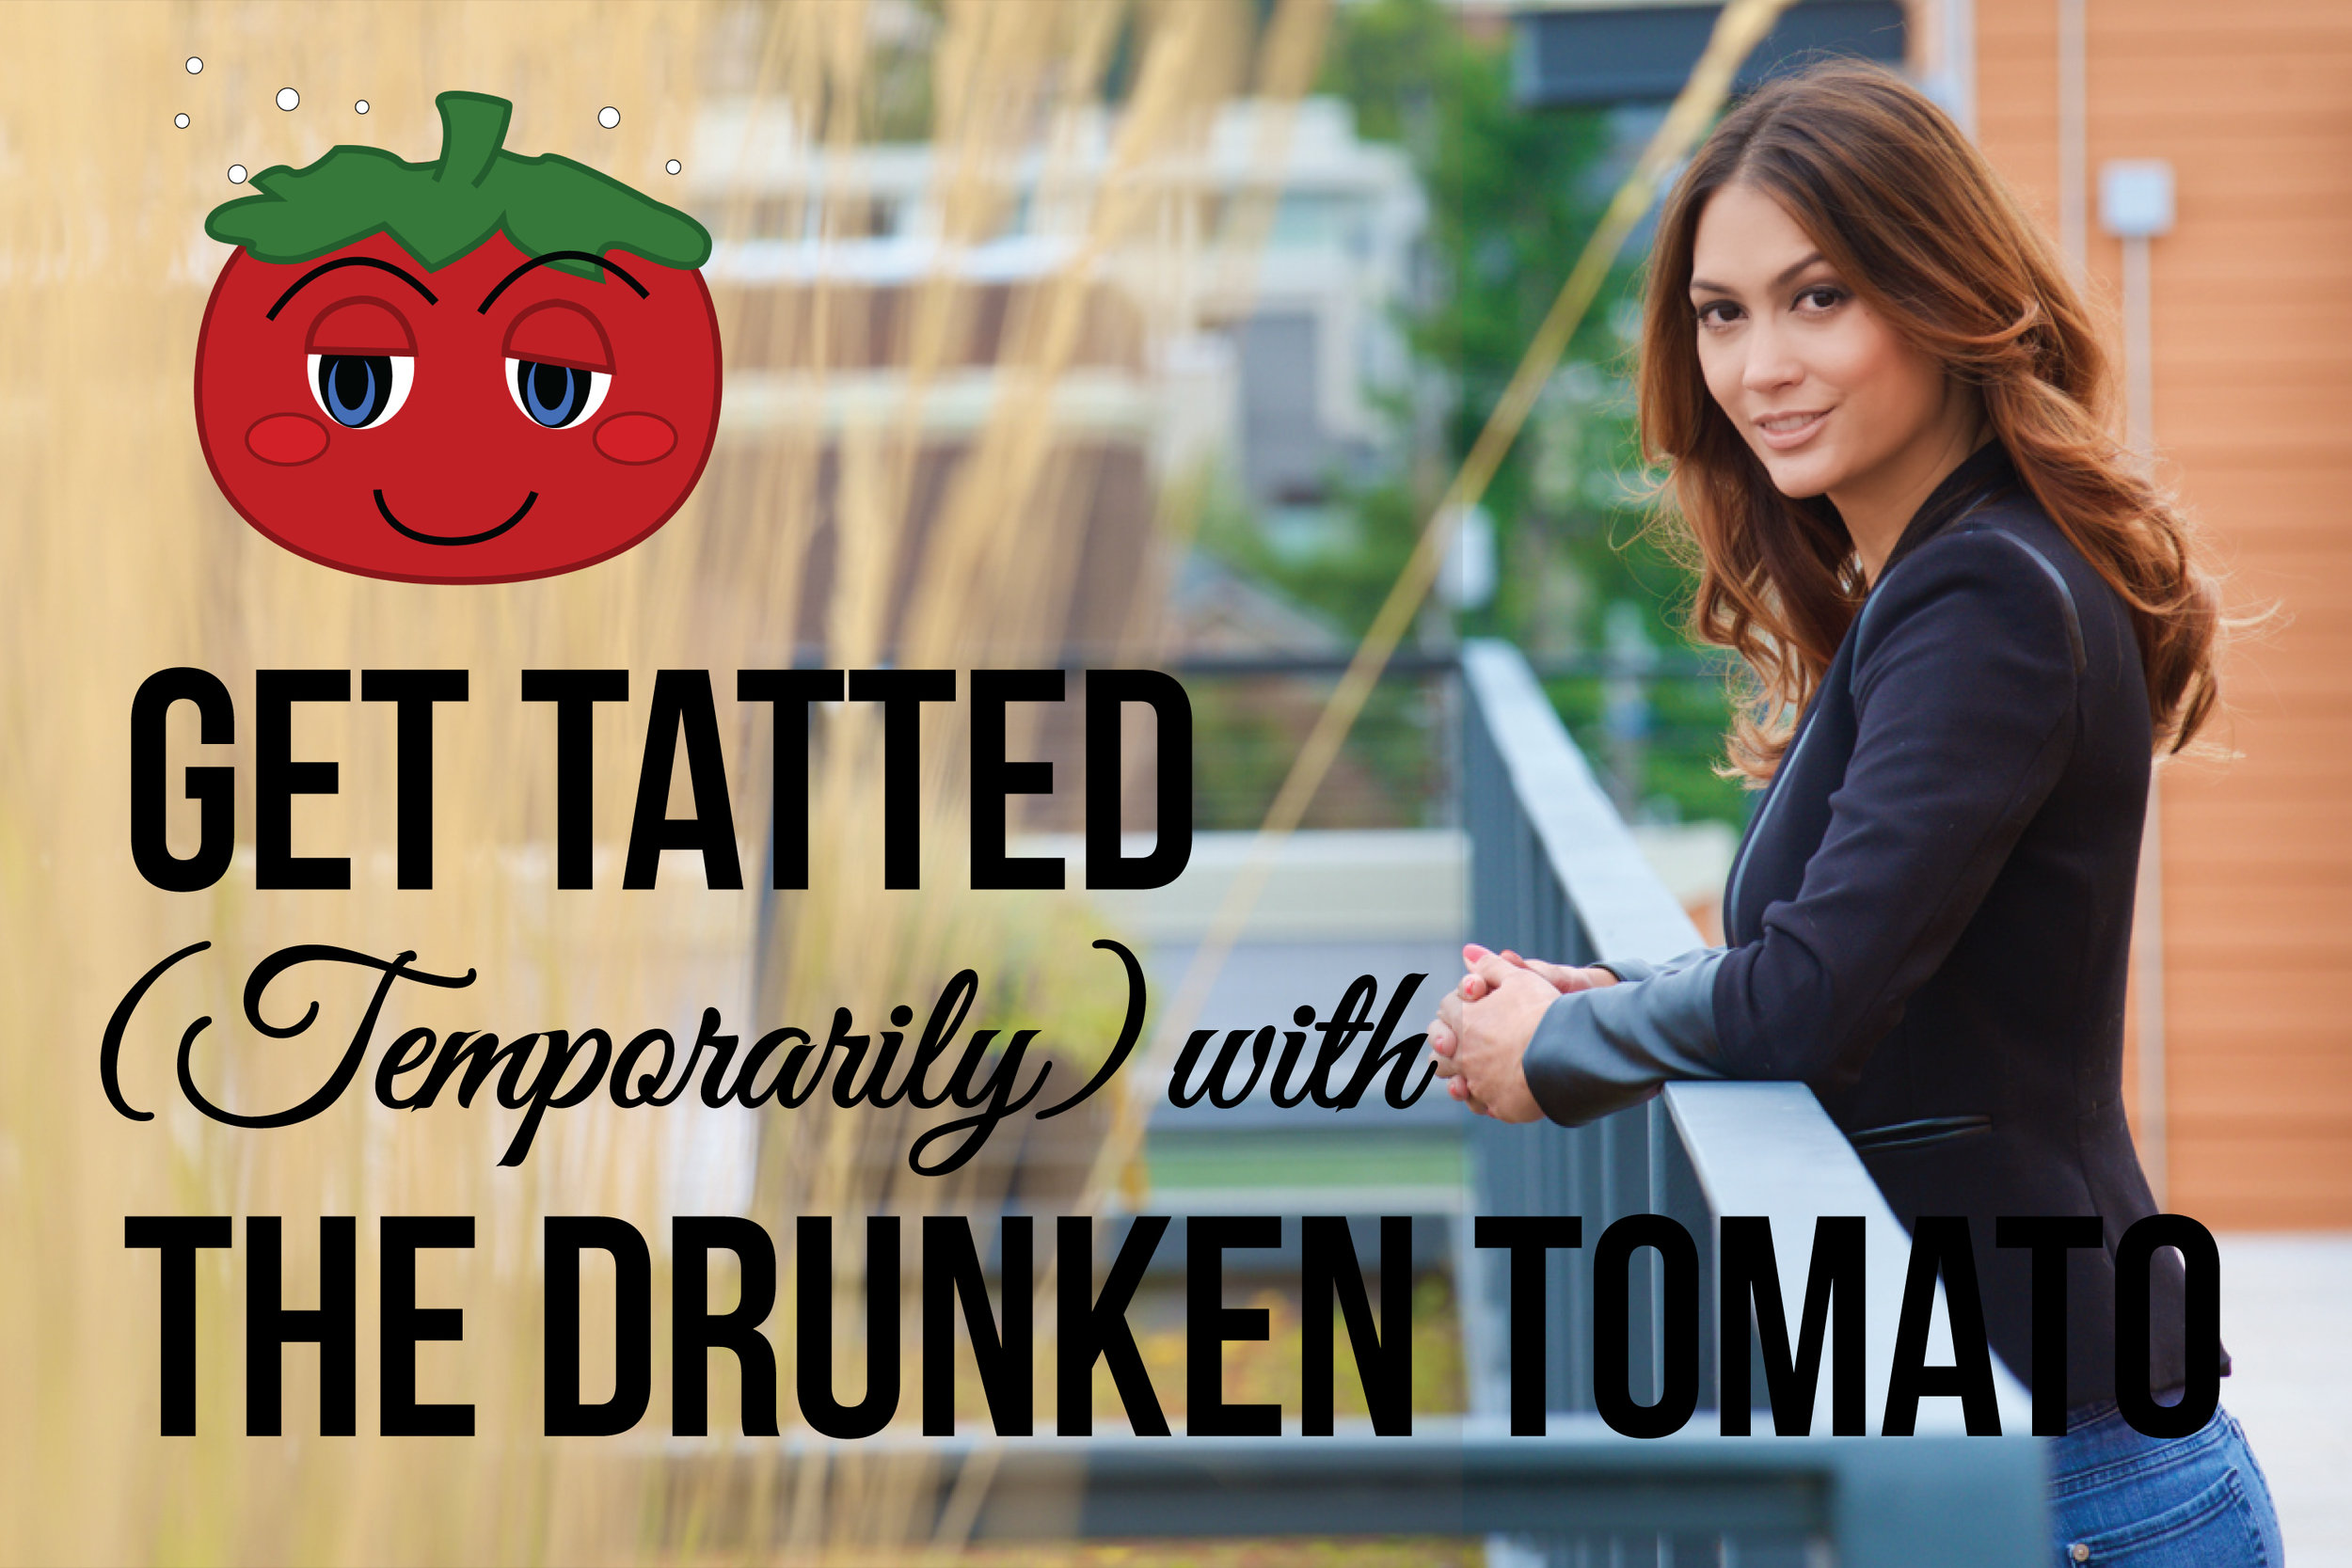 Get Tatted with The Drunken Tomato